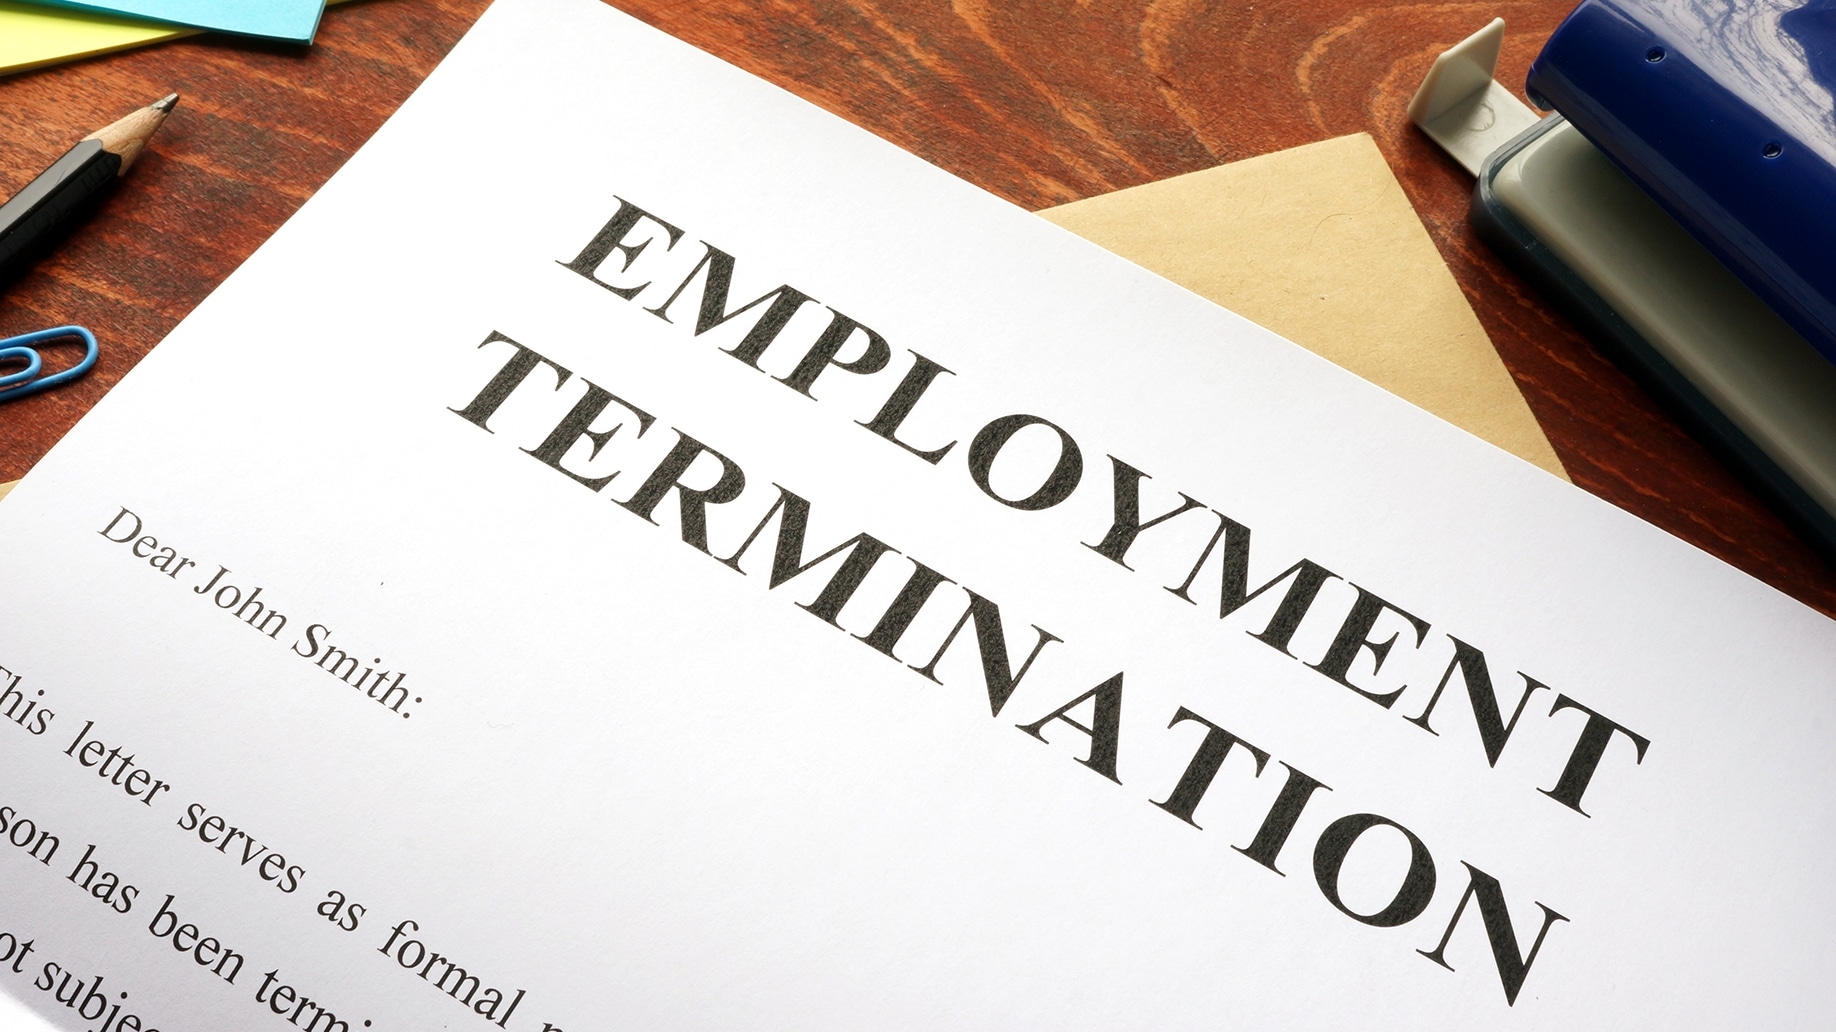 employment termination letter at top of table